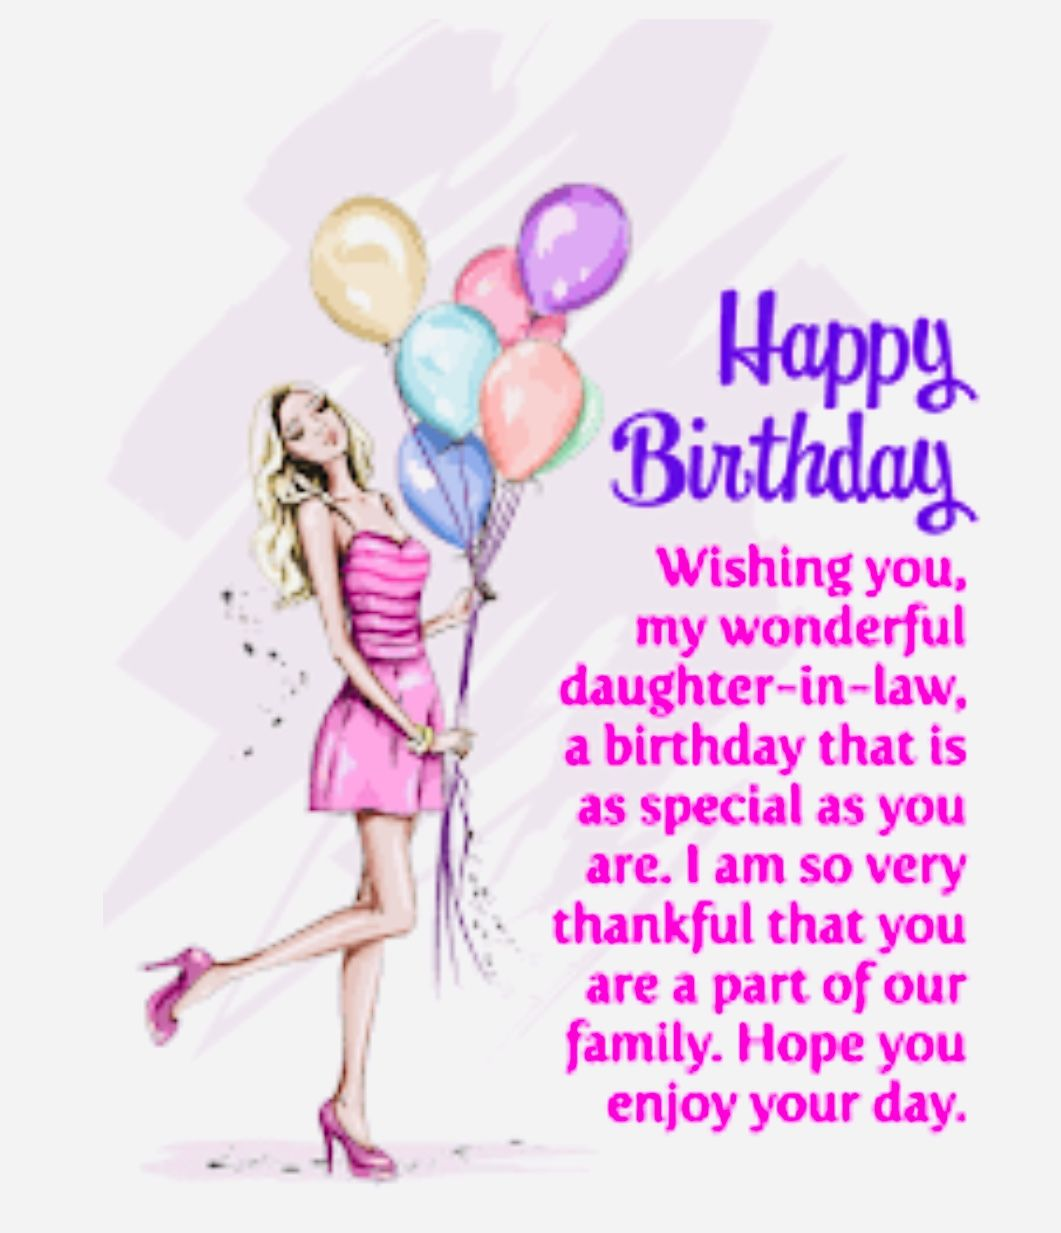 Pin by Dympna Reidy on Daughter in law birthday Happy